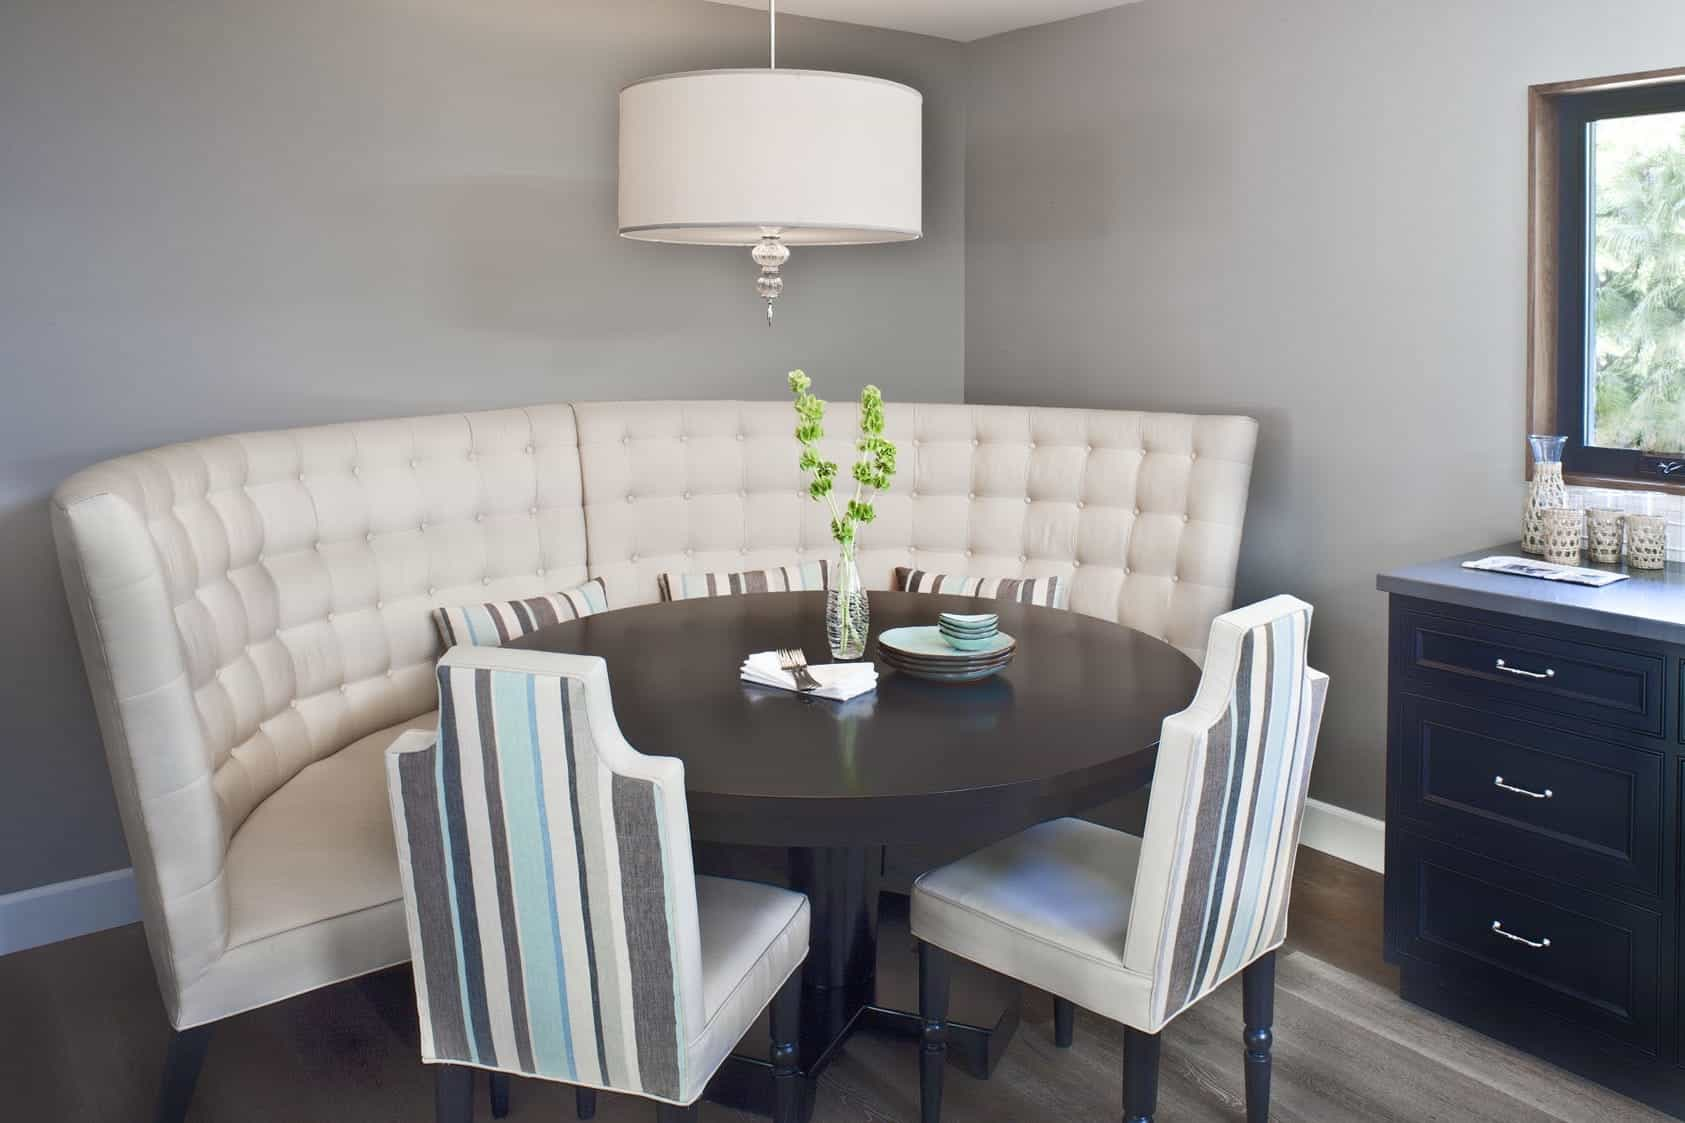 Corner Dining Room In Romantic Style With Tufted Bench And Striped Chairs (Photo 21 of 21)